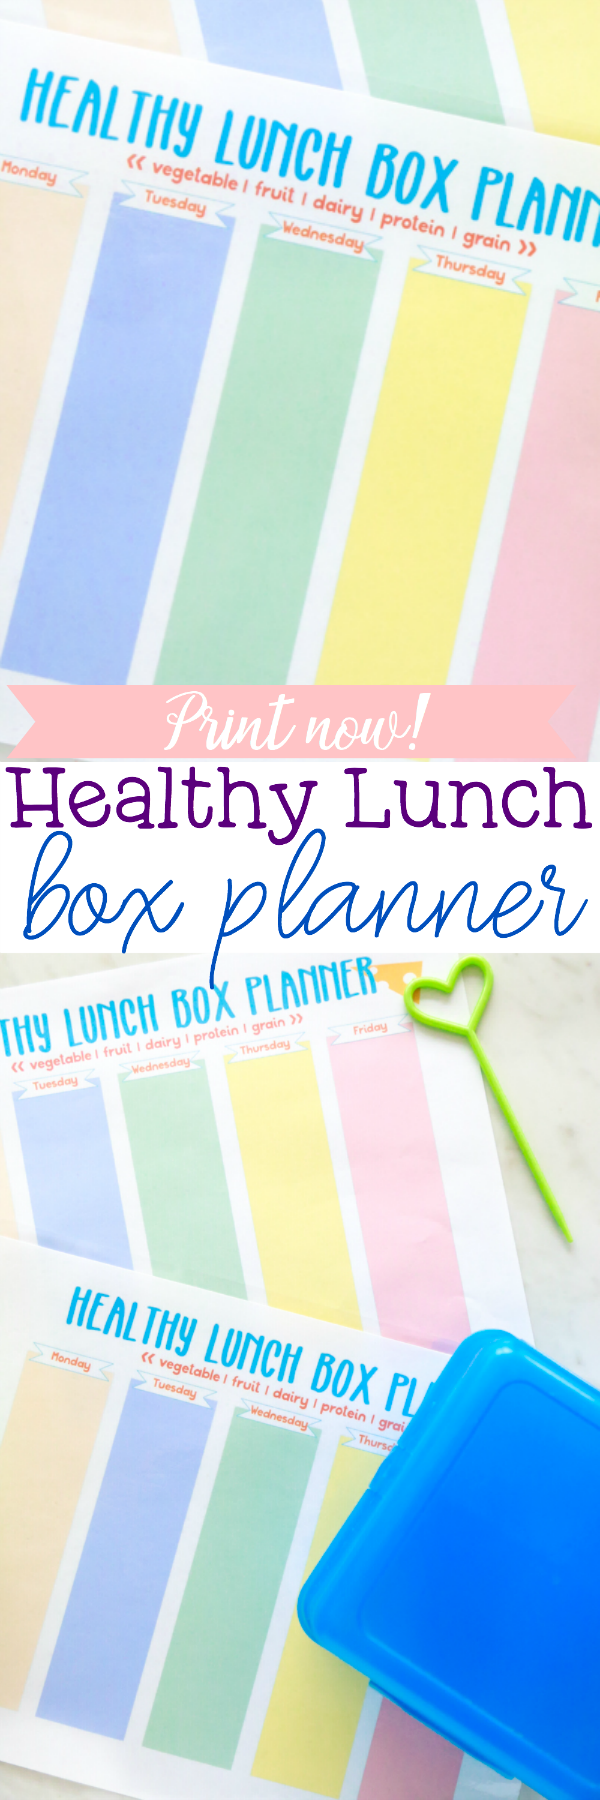 healthy lunch box planner printable